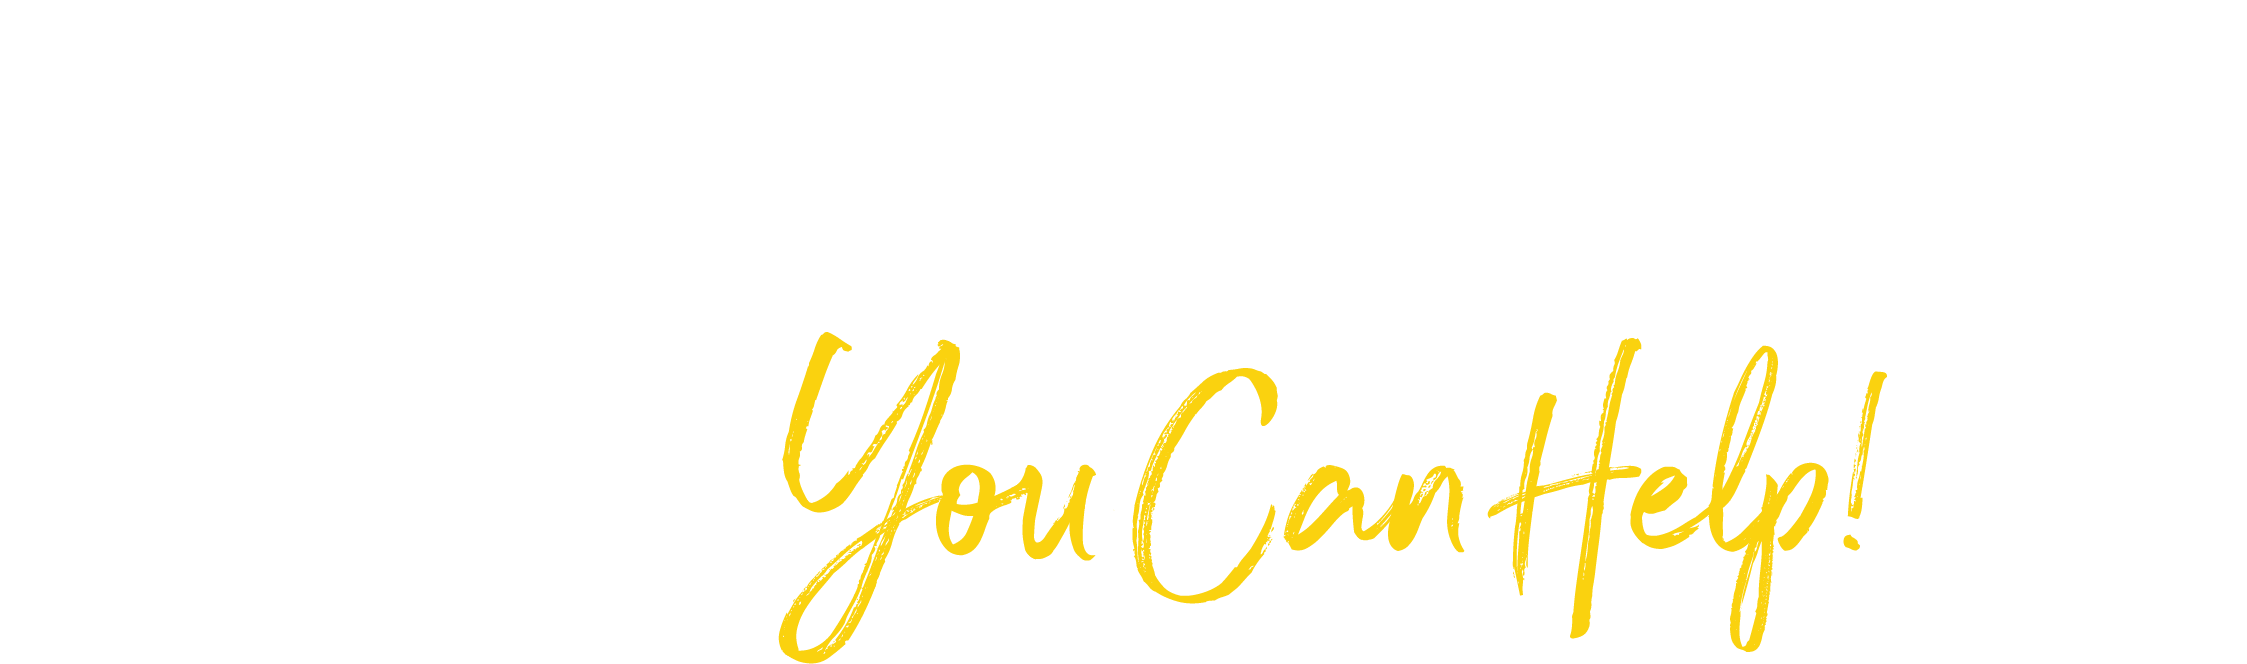 Let your employees know they don't have to walk through this alone. You can help!